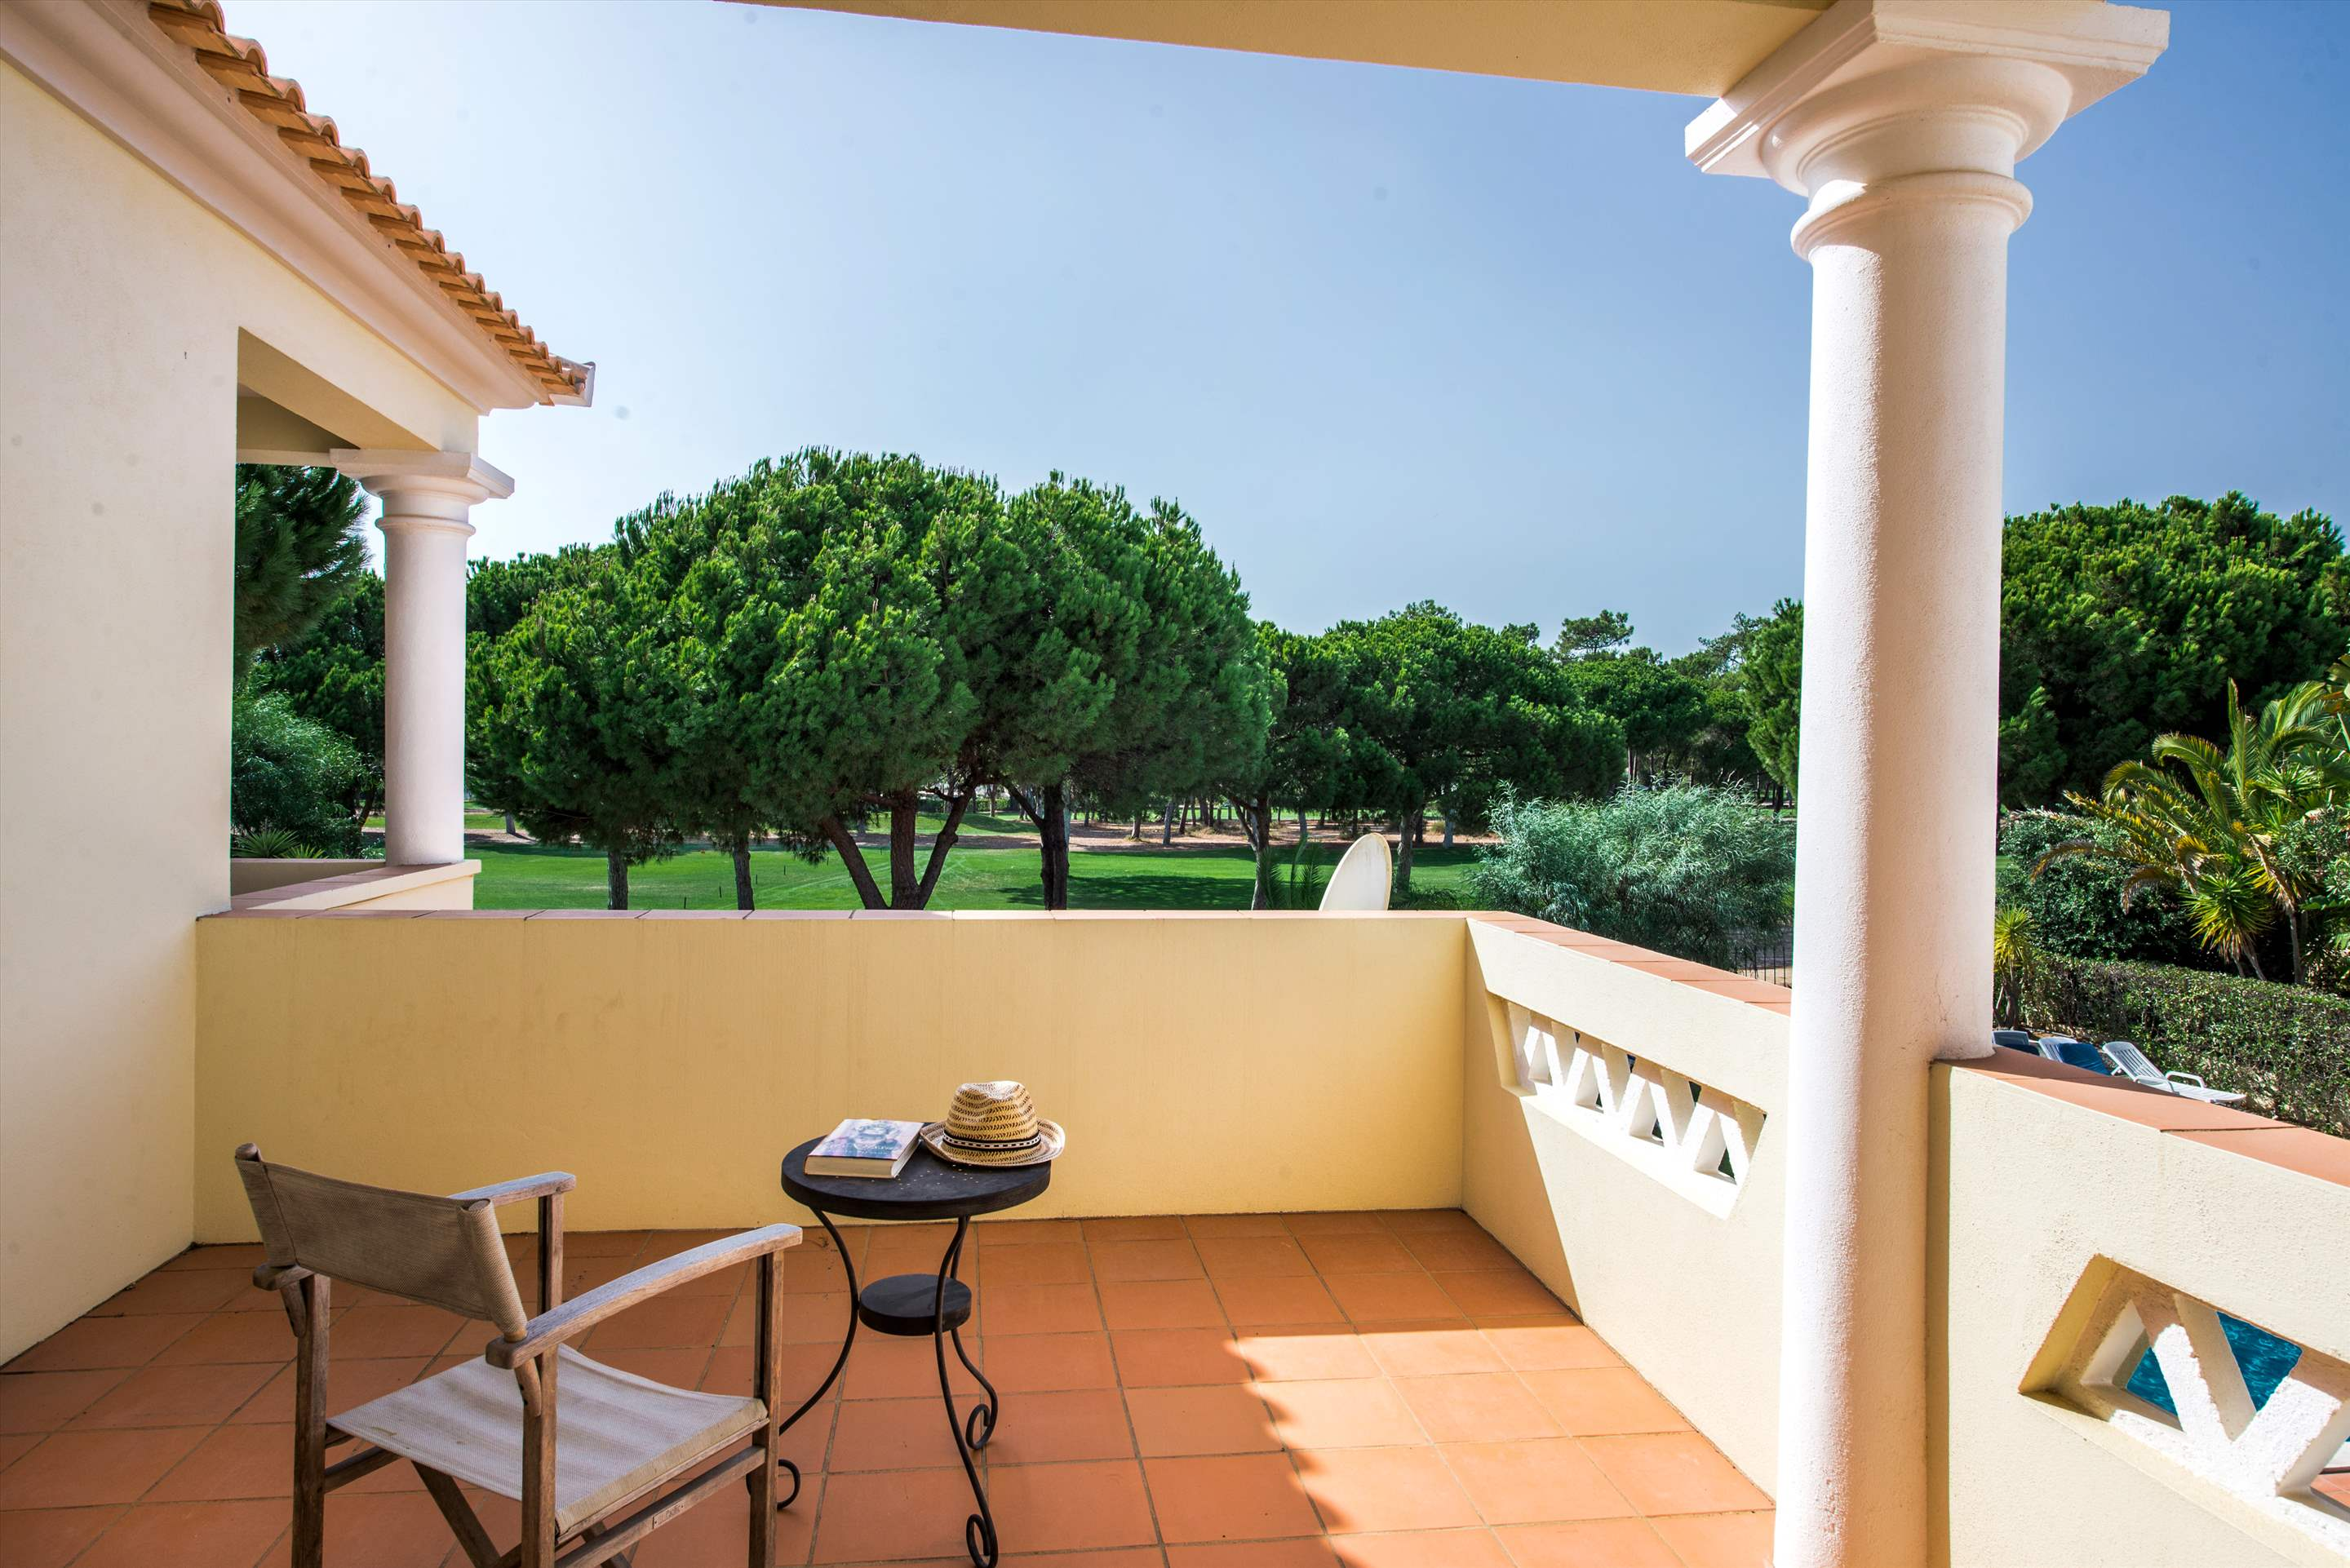 Vivenda Anita 1, 4 bedroom villa in Vilamoura Area, Algarve Photo #19